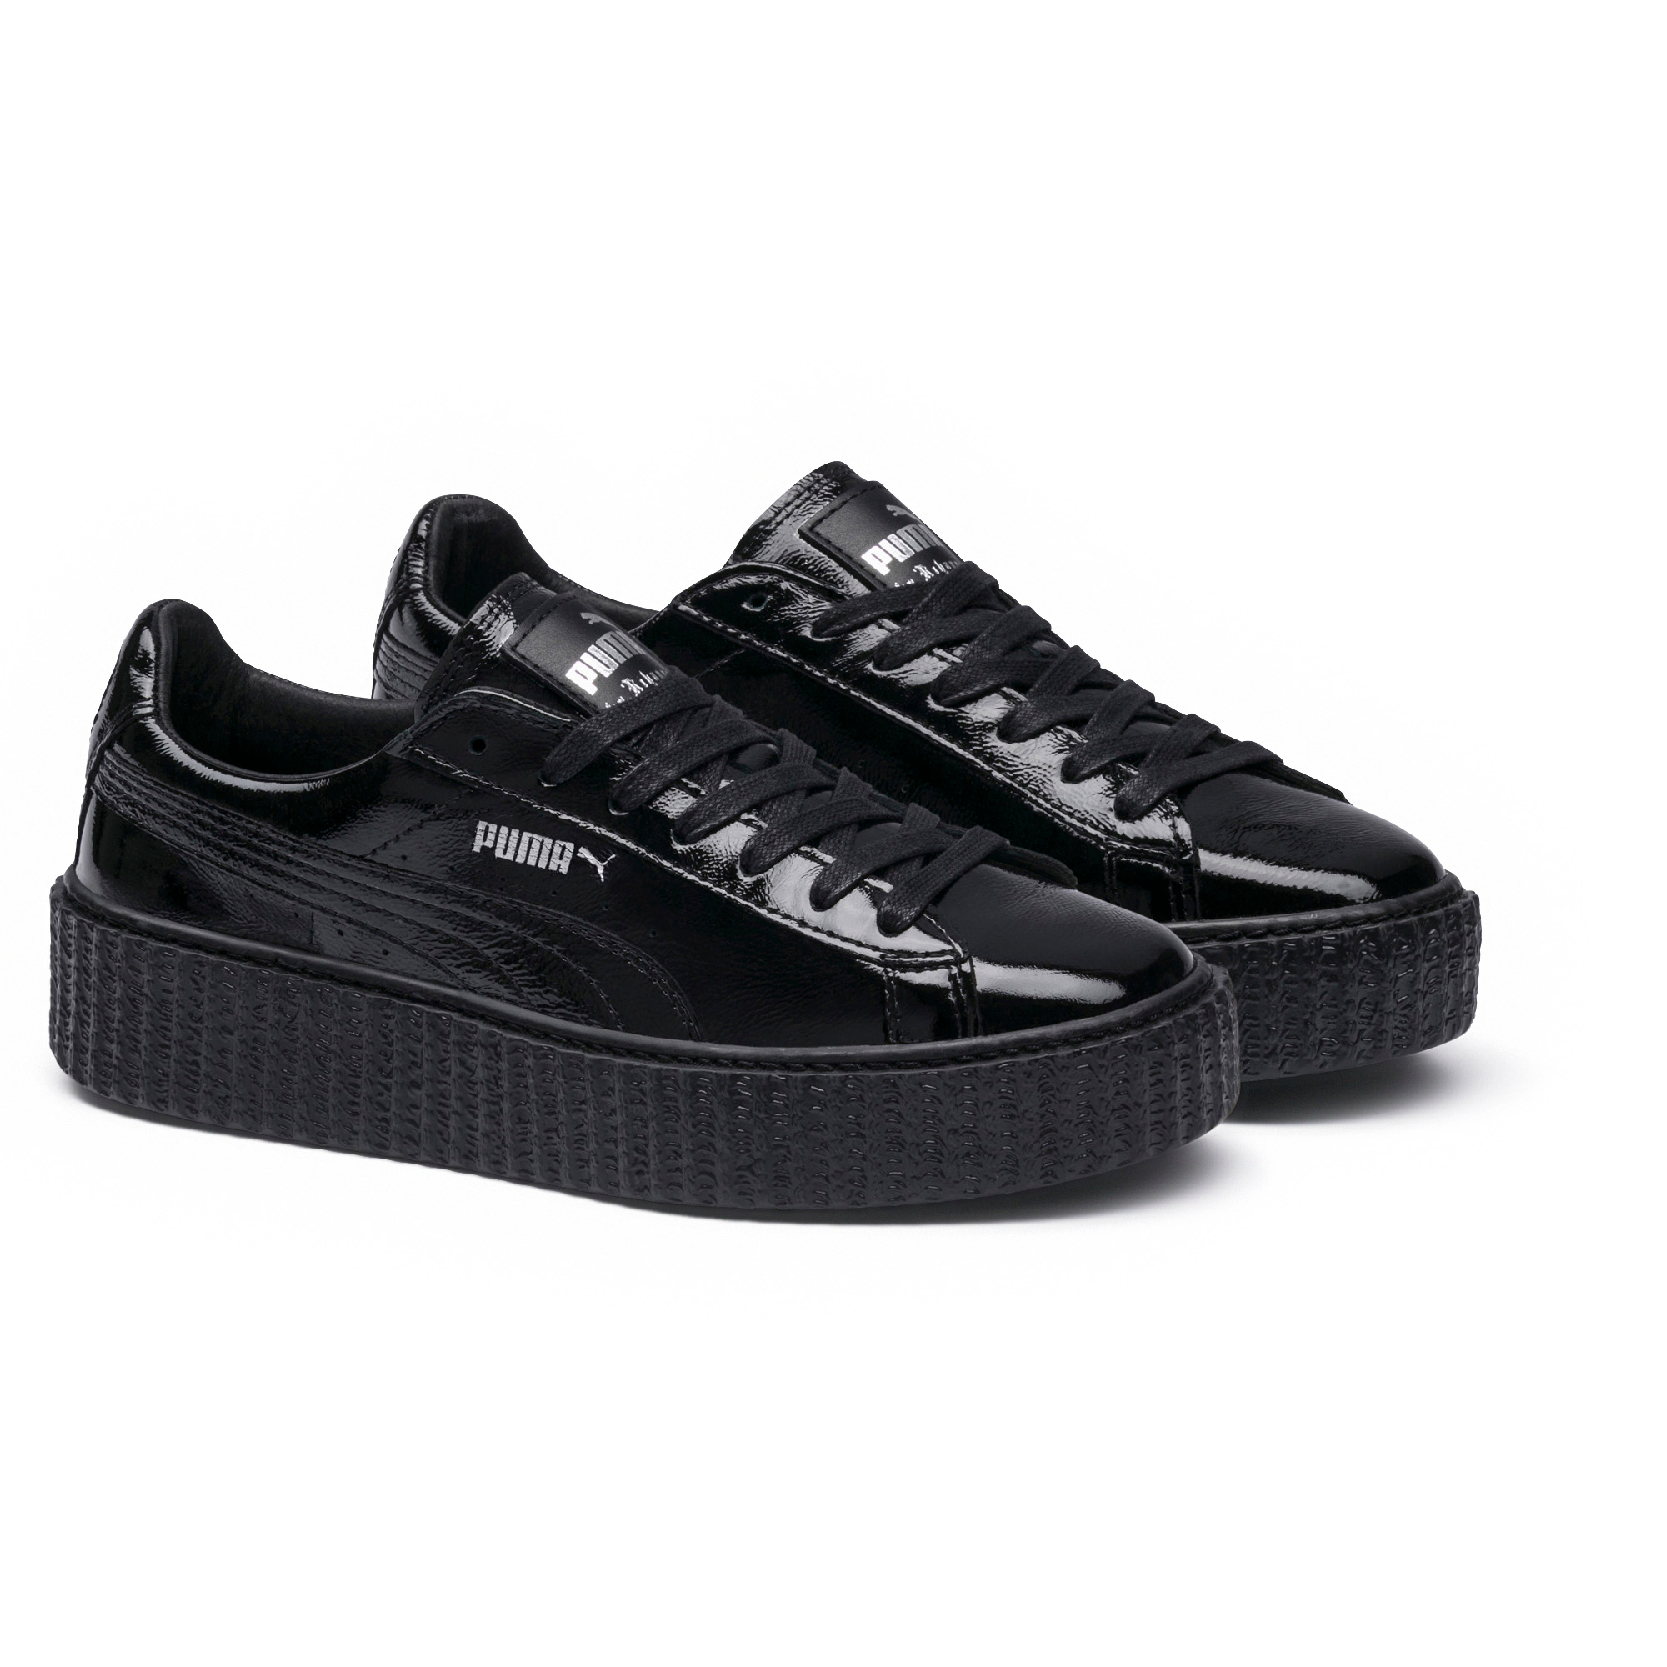 check out 5f5e7 1a454 PUMA FENTY by Rihanna Creeper Cracked Black Leather-Pamper ...